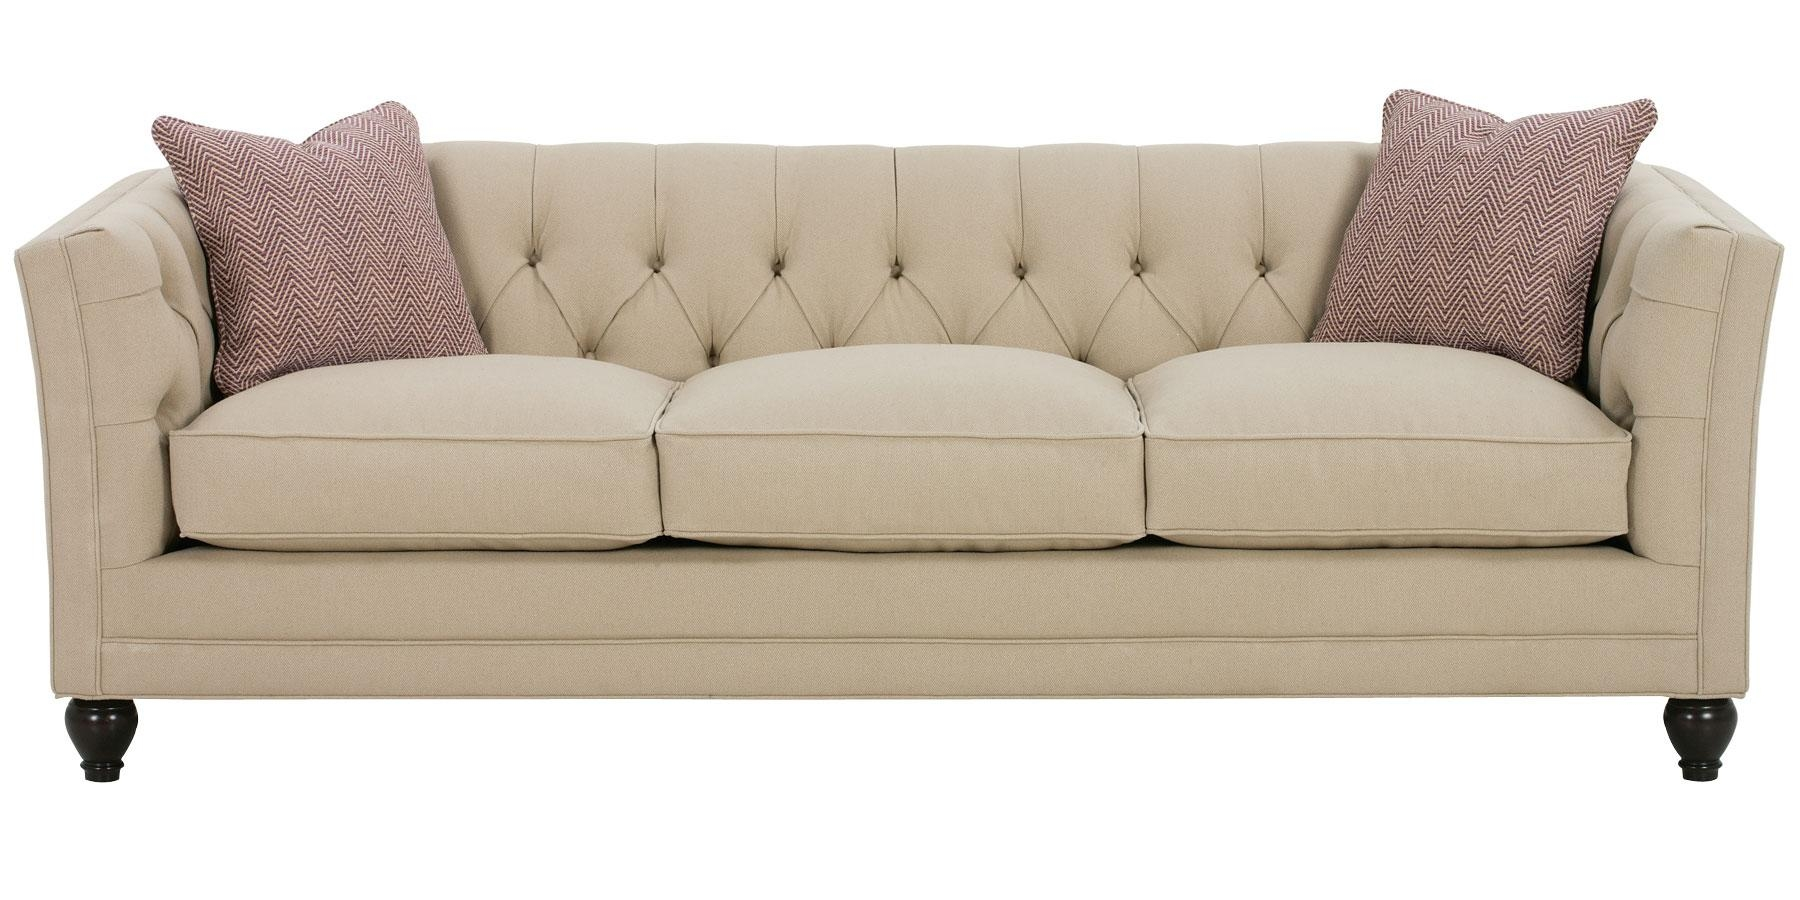 Fabric Upholstered Sofas And Chairs | Club Furniture In Fabric Sofas (Image 16 of 20)